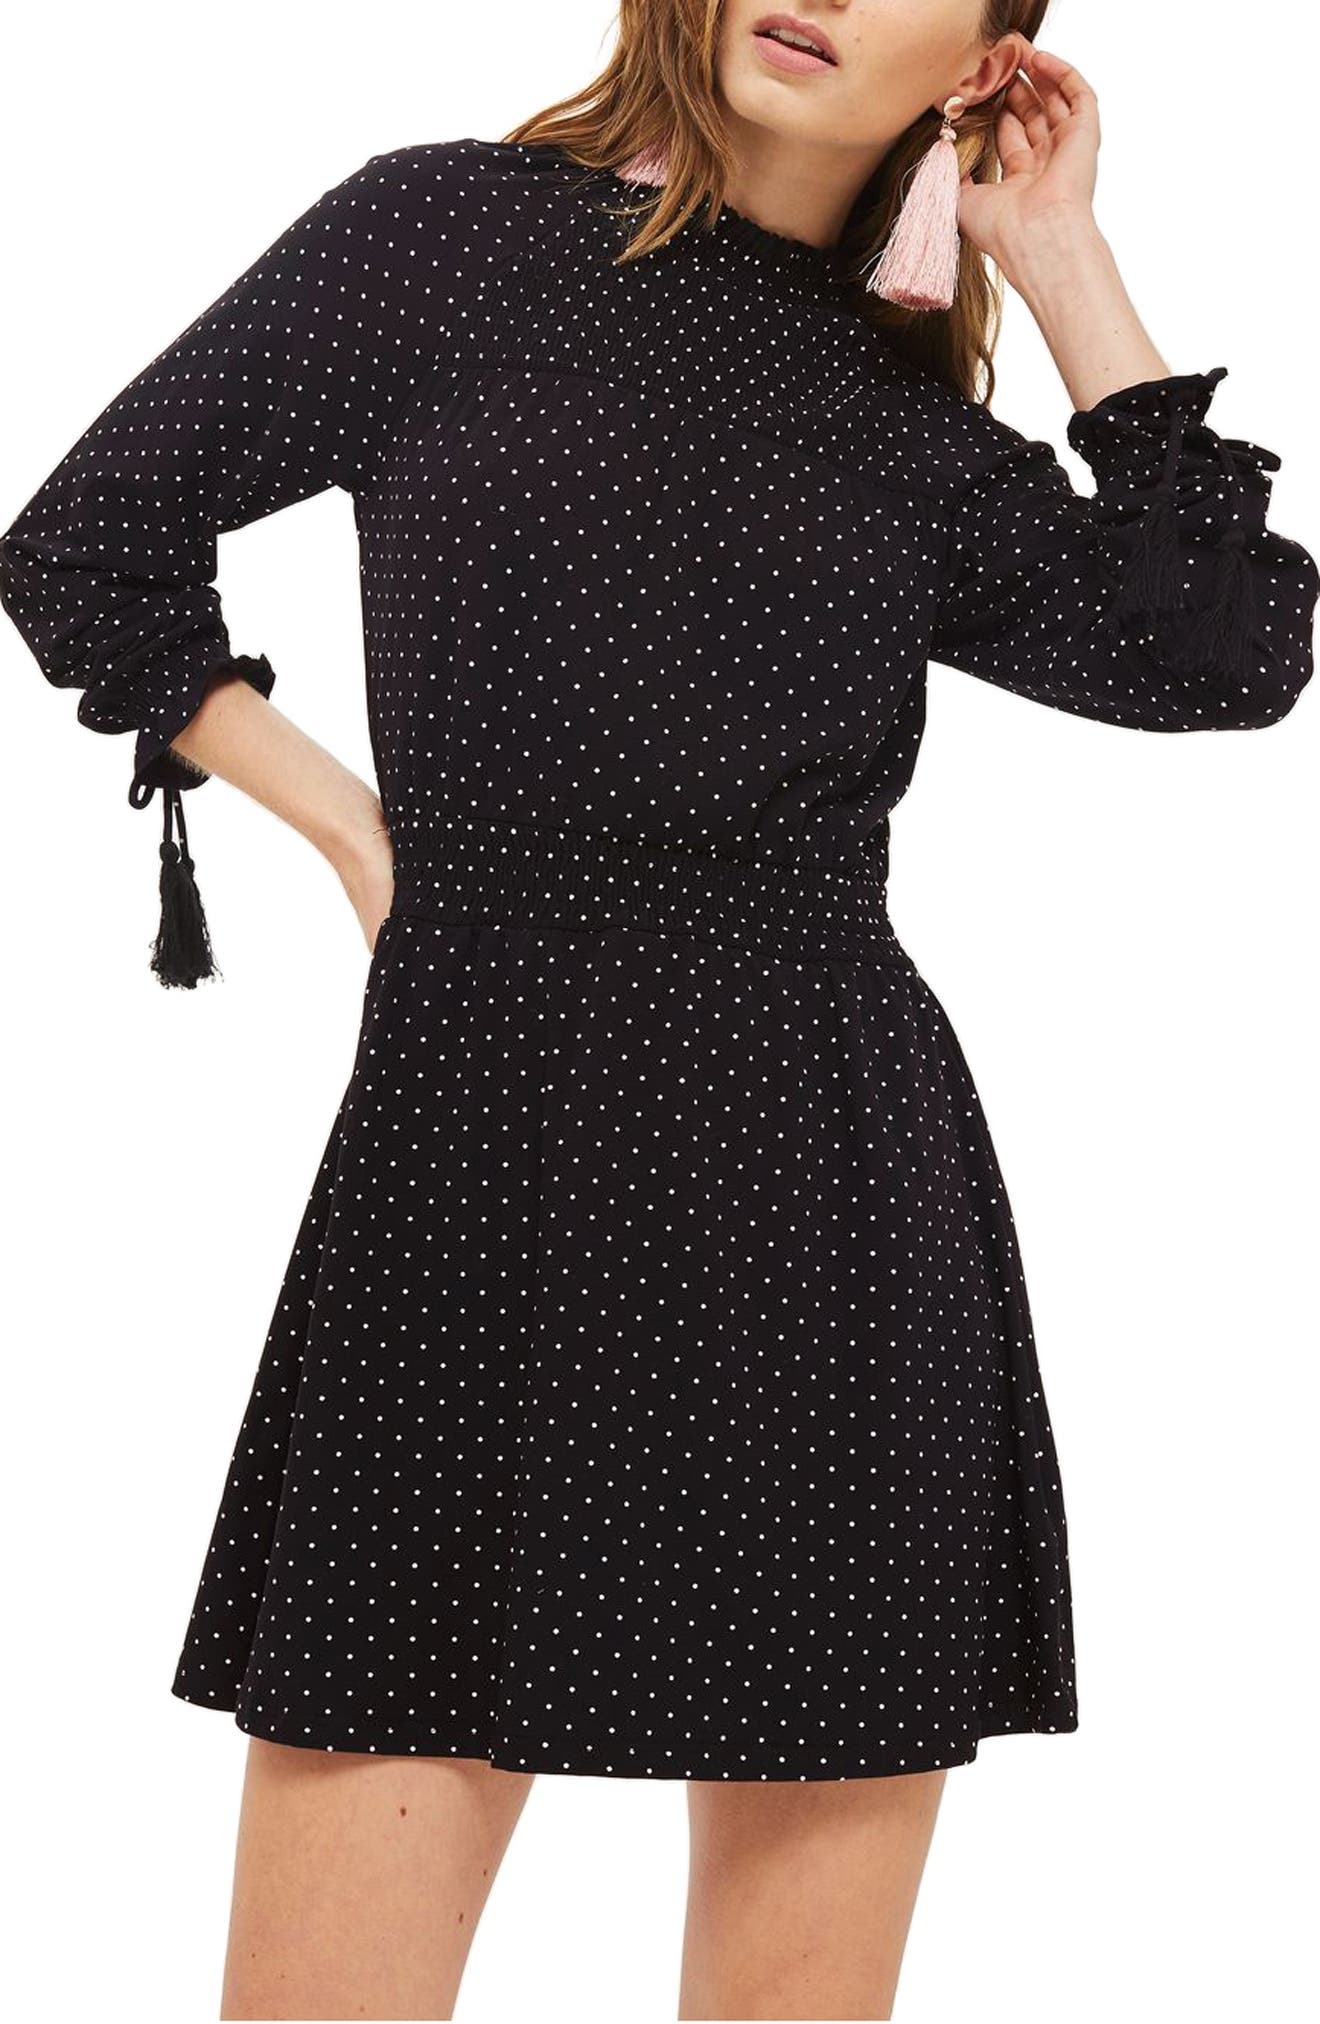 Topshop Polka Dot Shirred Waist Dress